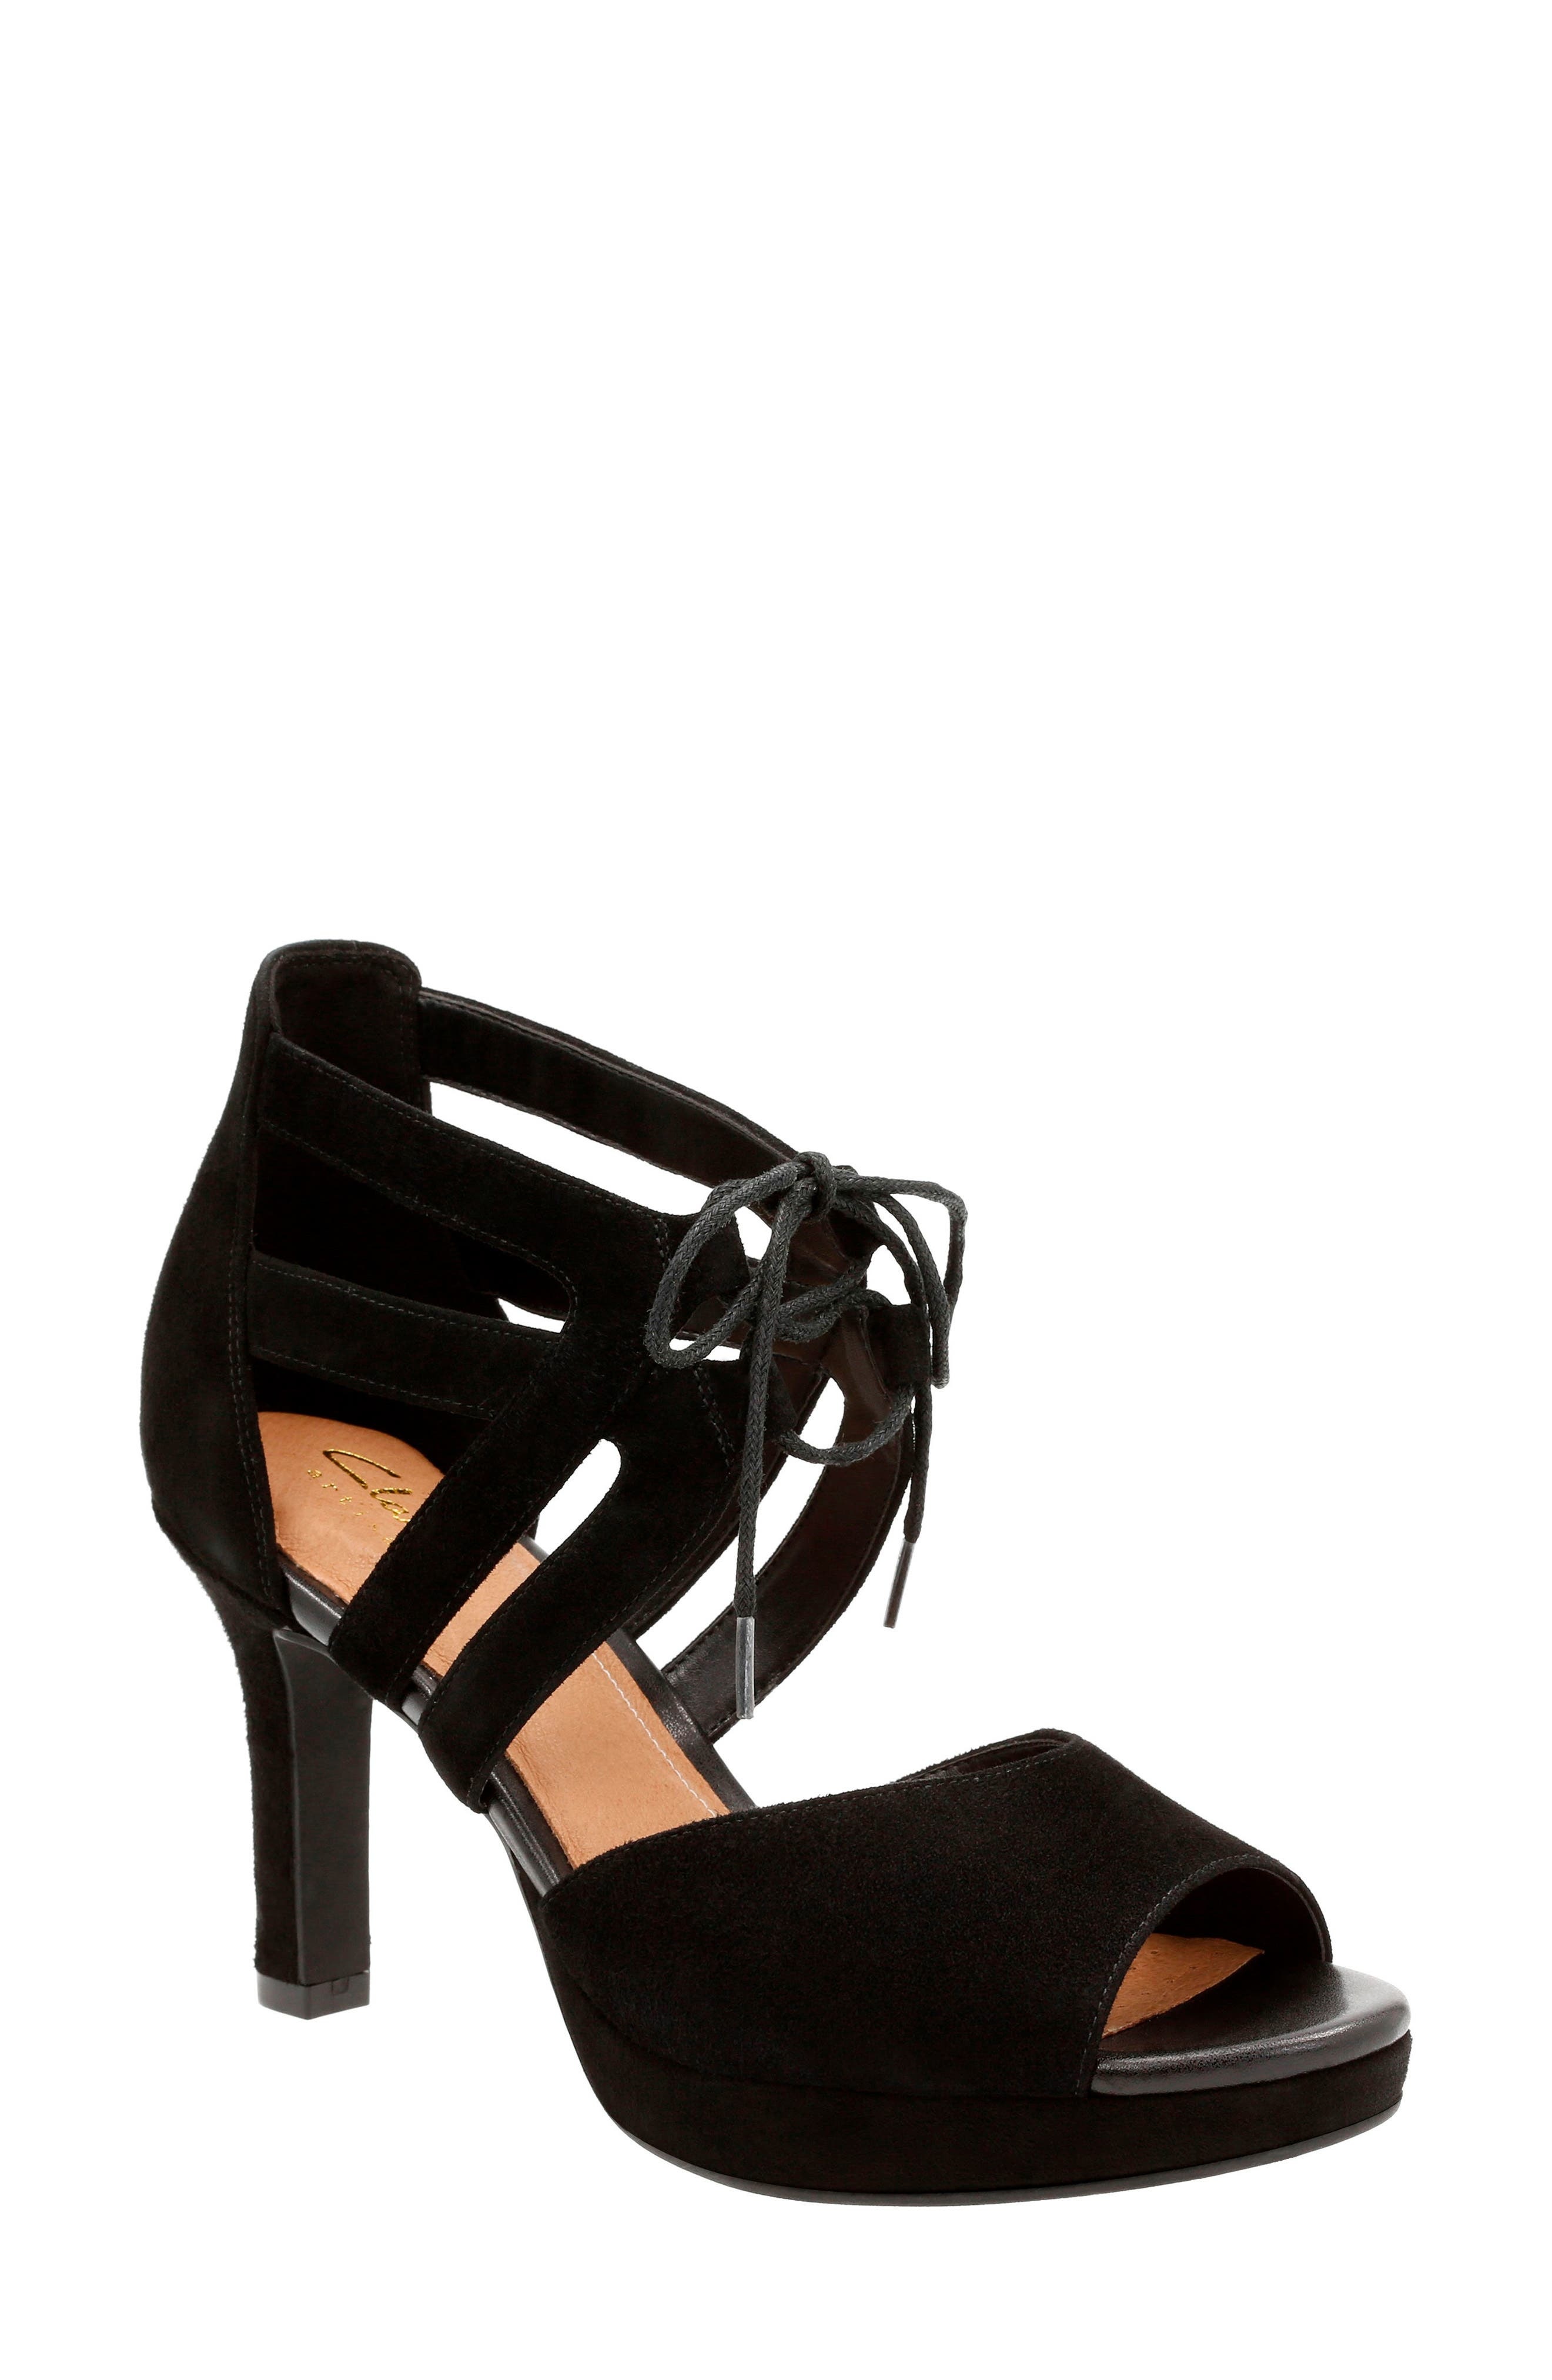 Mayra Ellie Pump,                             Main thumbnail 1, color,                             007